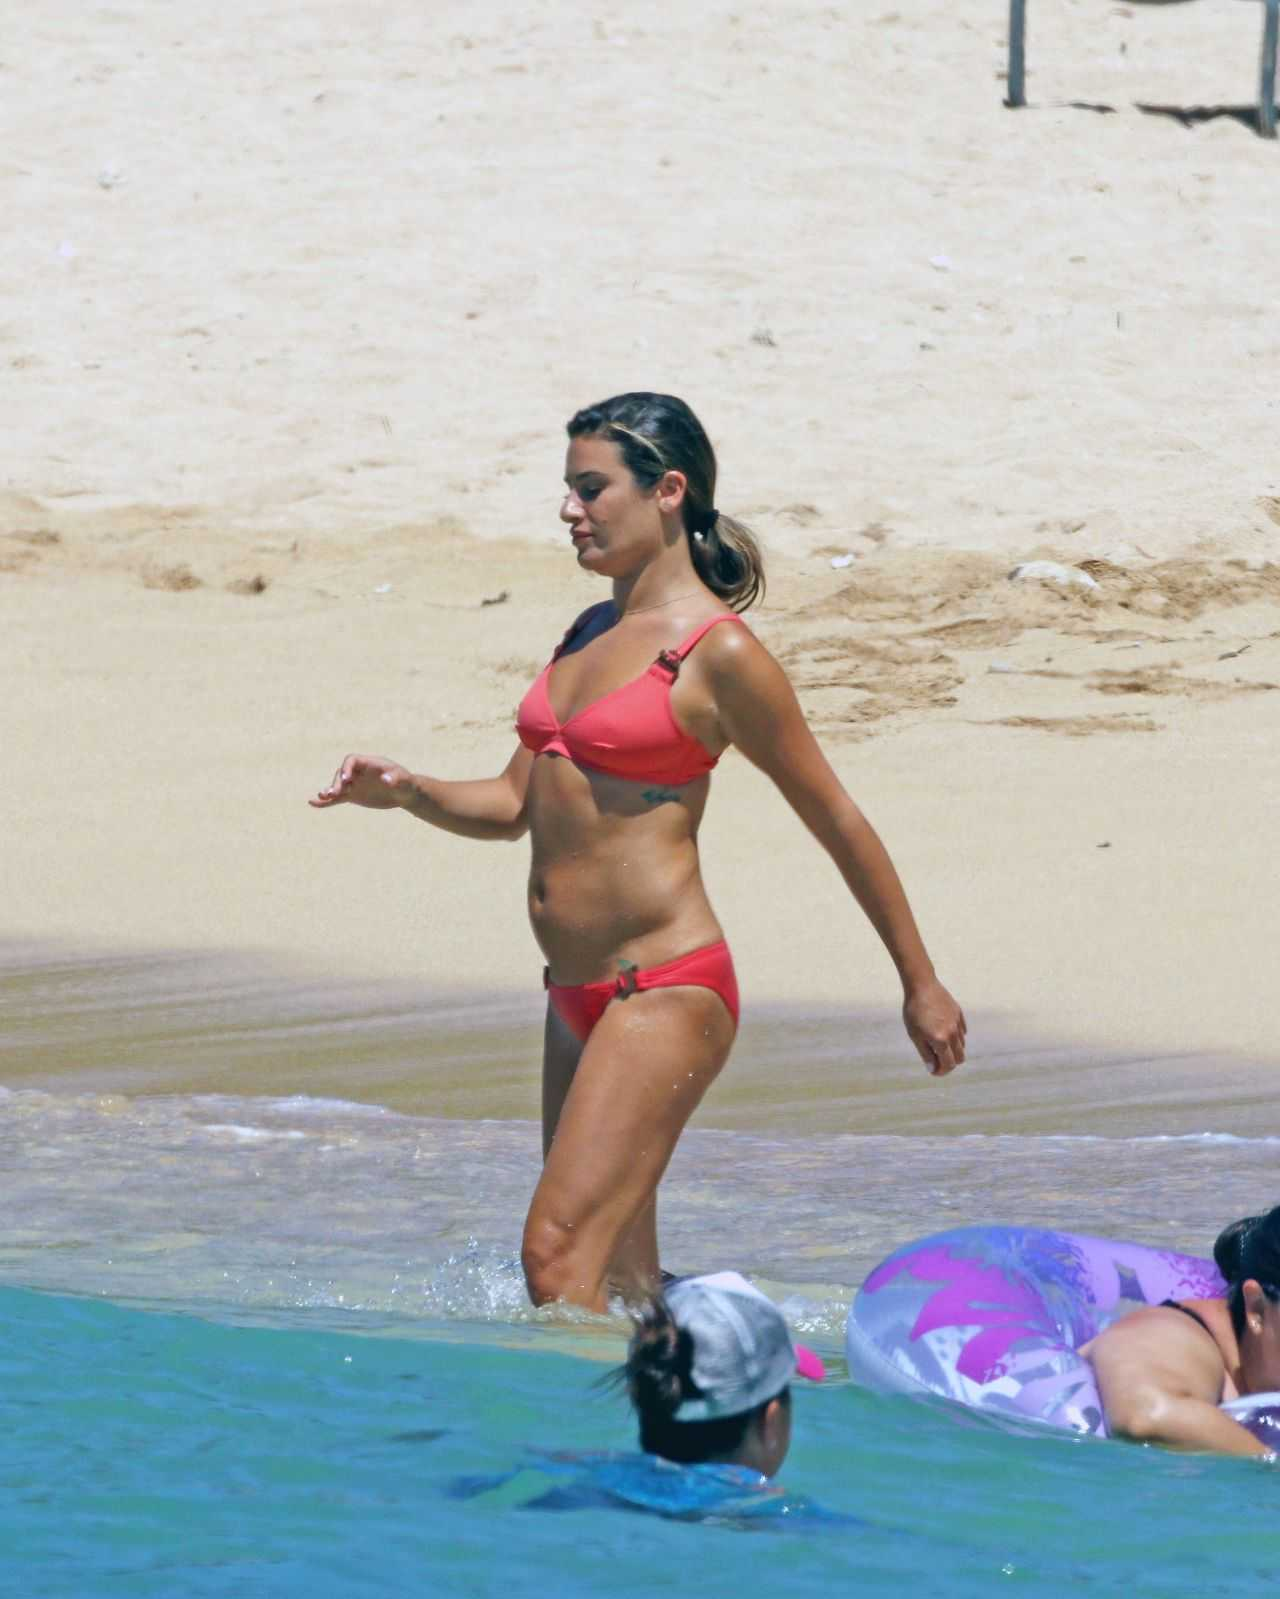 Lea Michele Hot Pictures, Bikini And Fashion Style (49 Photos)